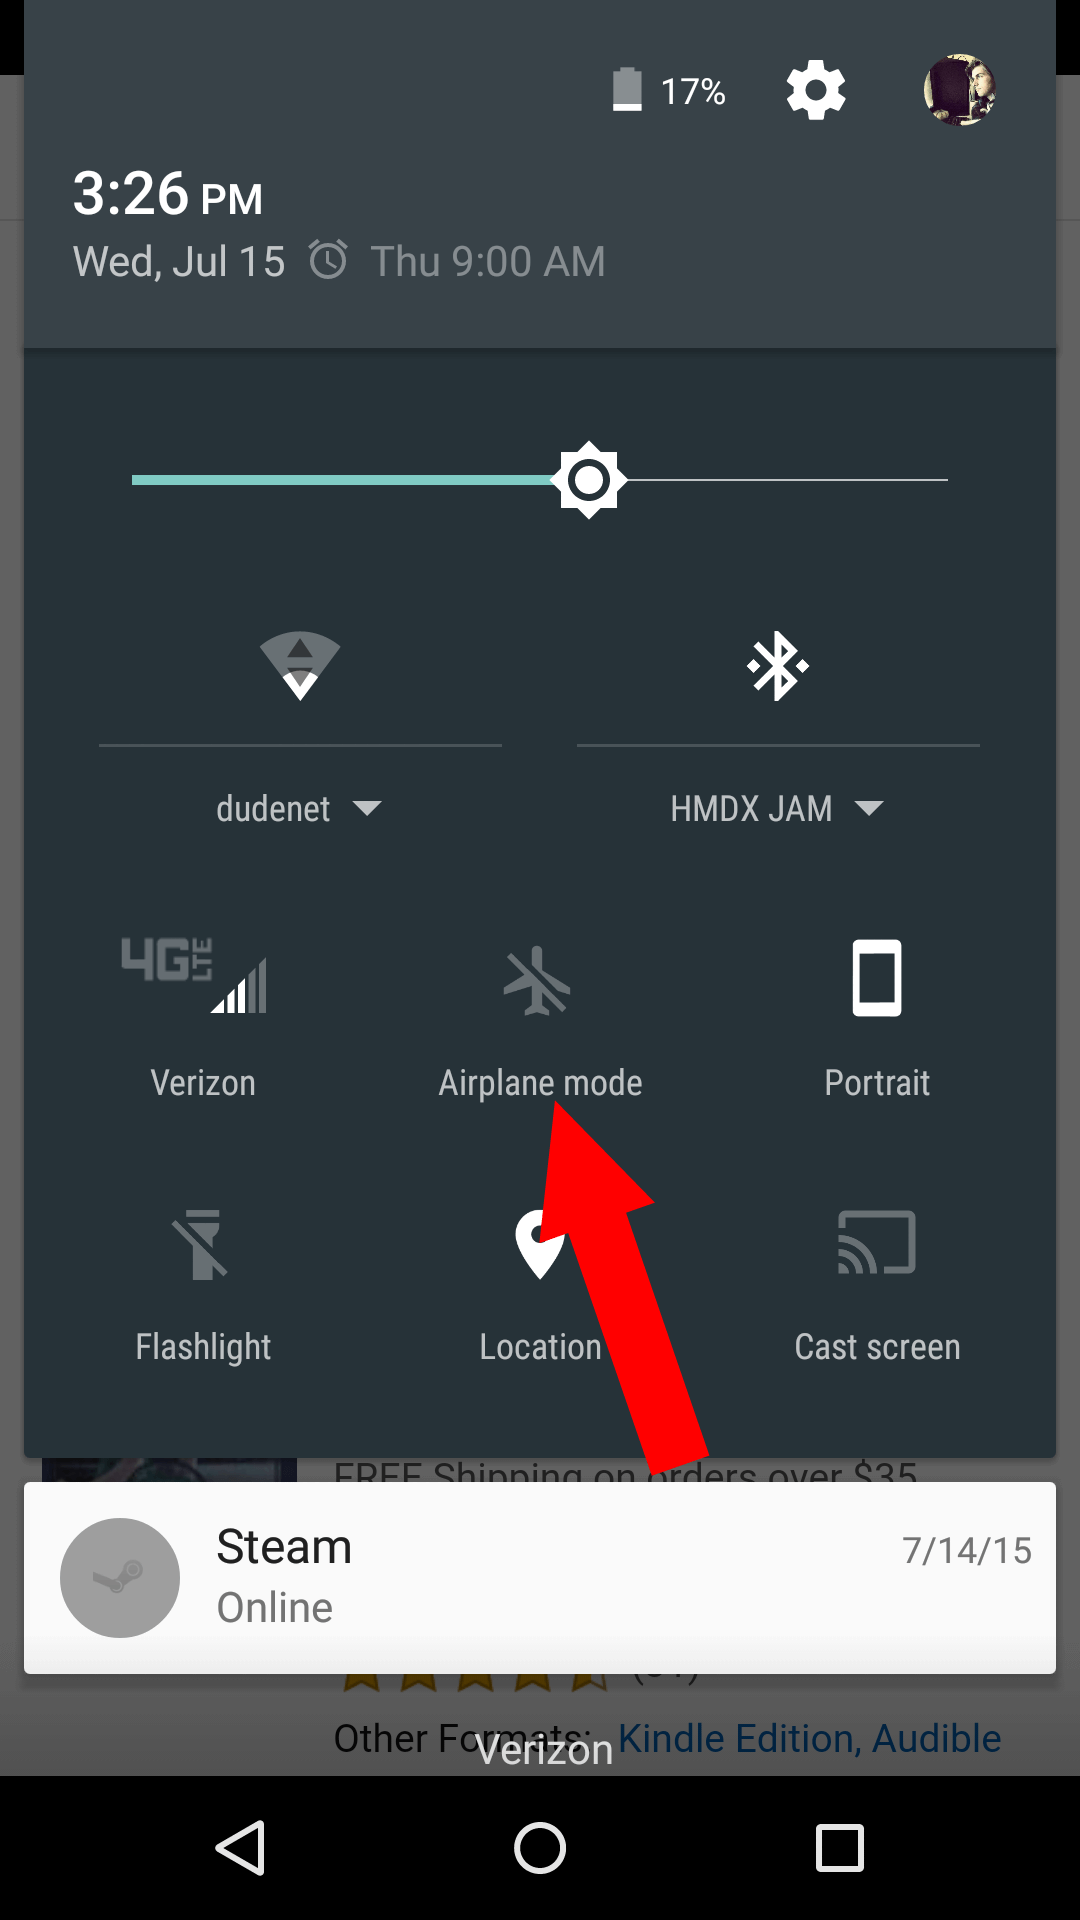 Activate Airplane Mode to give your Wi-Fi connection a refresher.